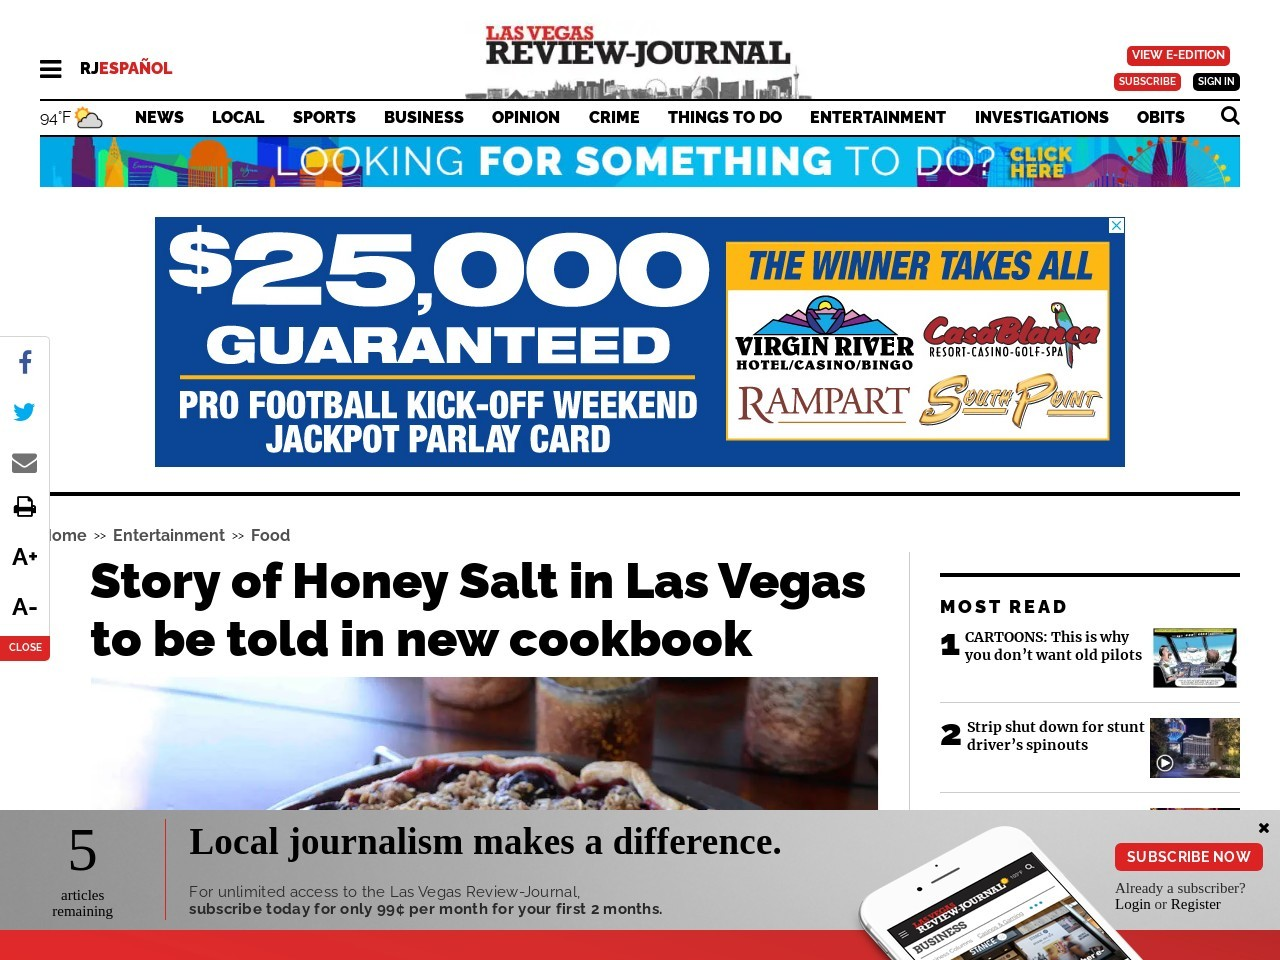 Story of Honey Salt in Las Vegas to be told in new cookbook